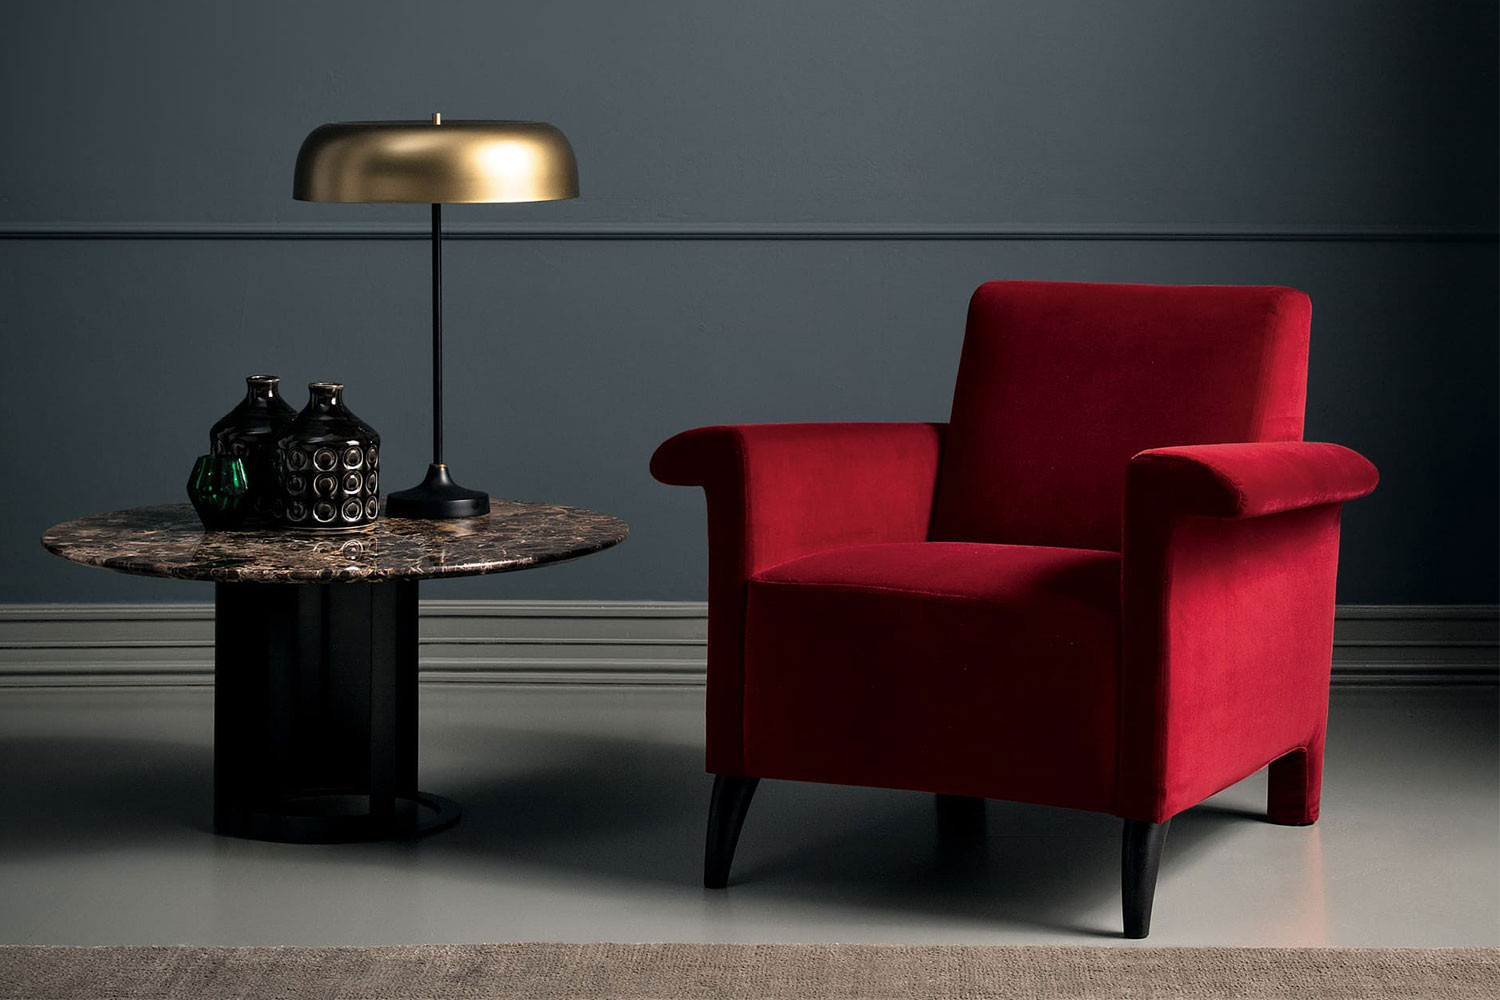 Single seat transitional armchair with winged arms and tapered legs